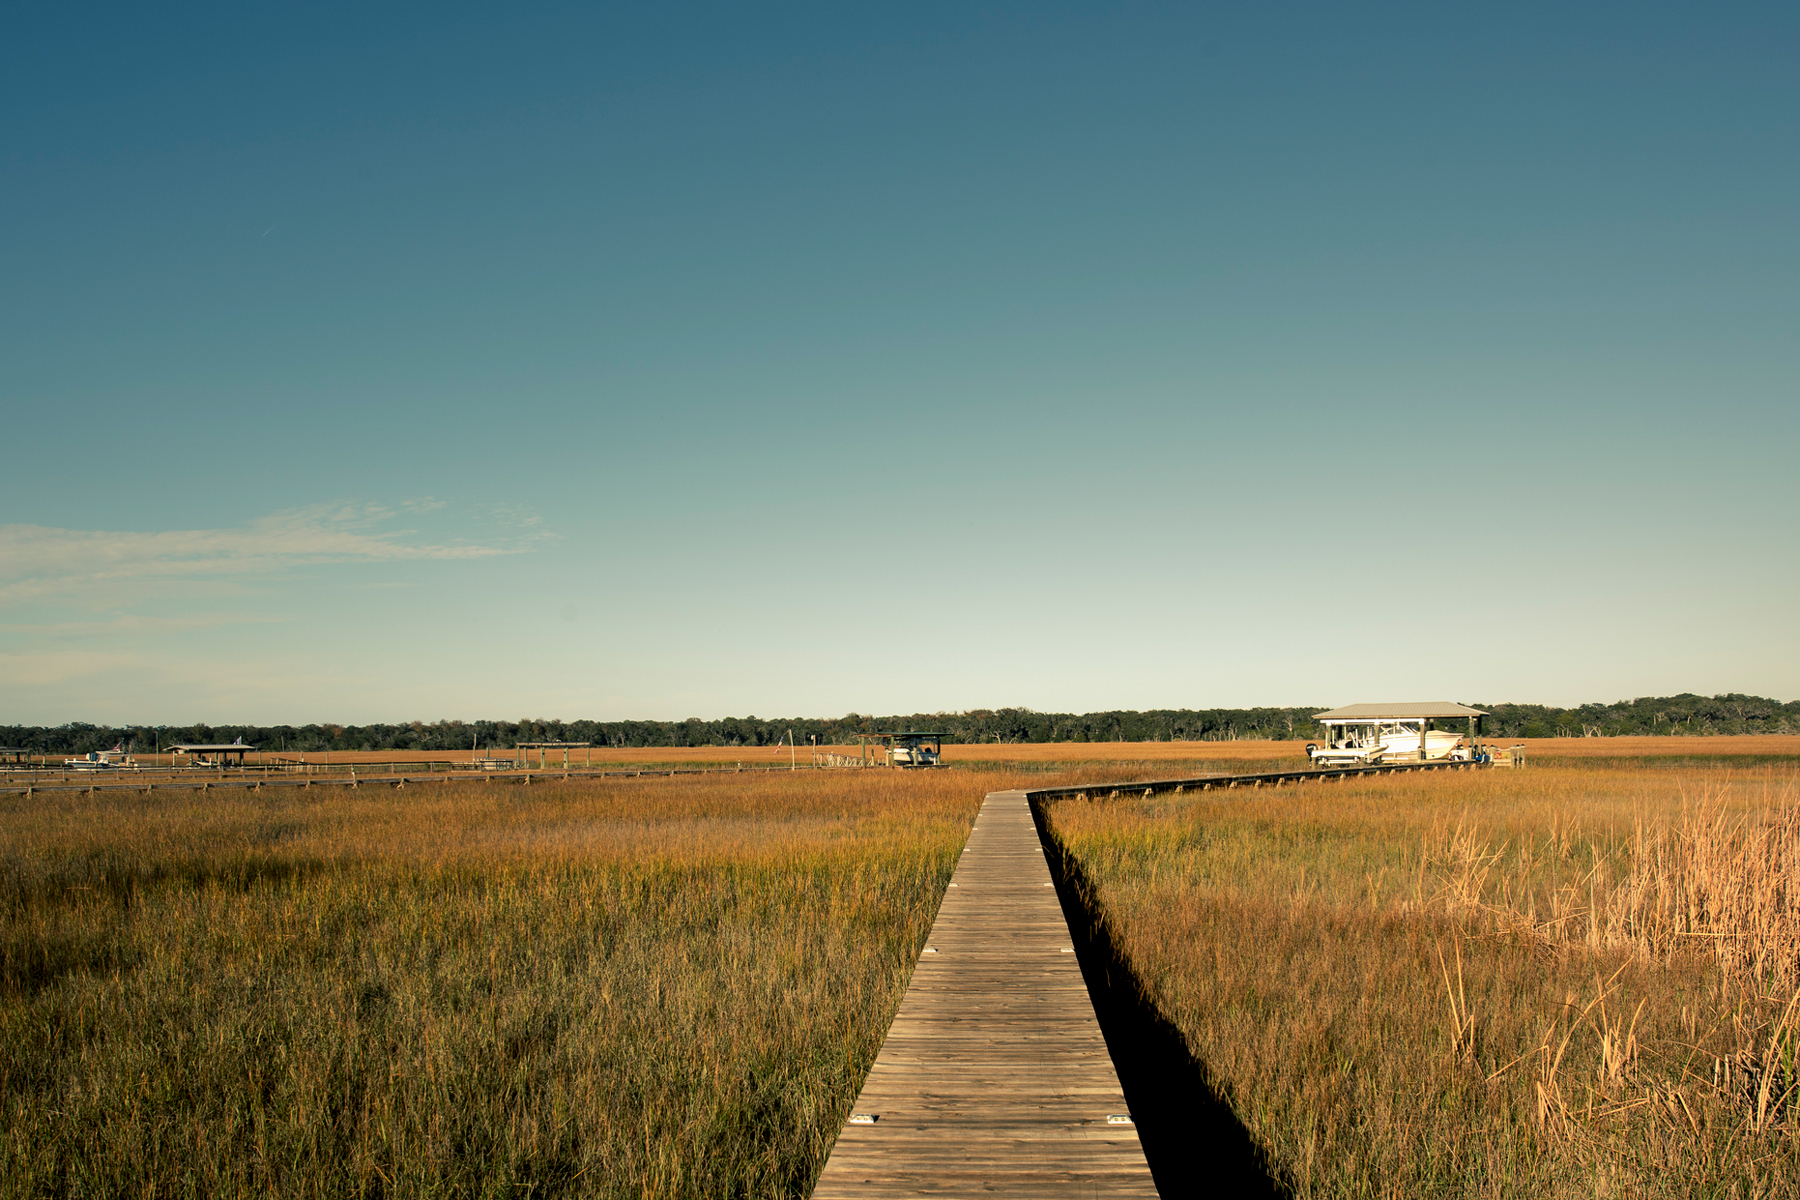 Marsh and Inland waterway, Amelia Island, near Jacksonville, Florida